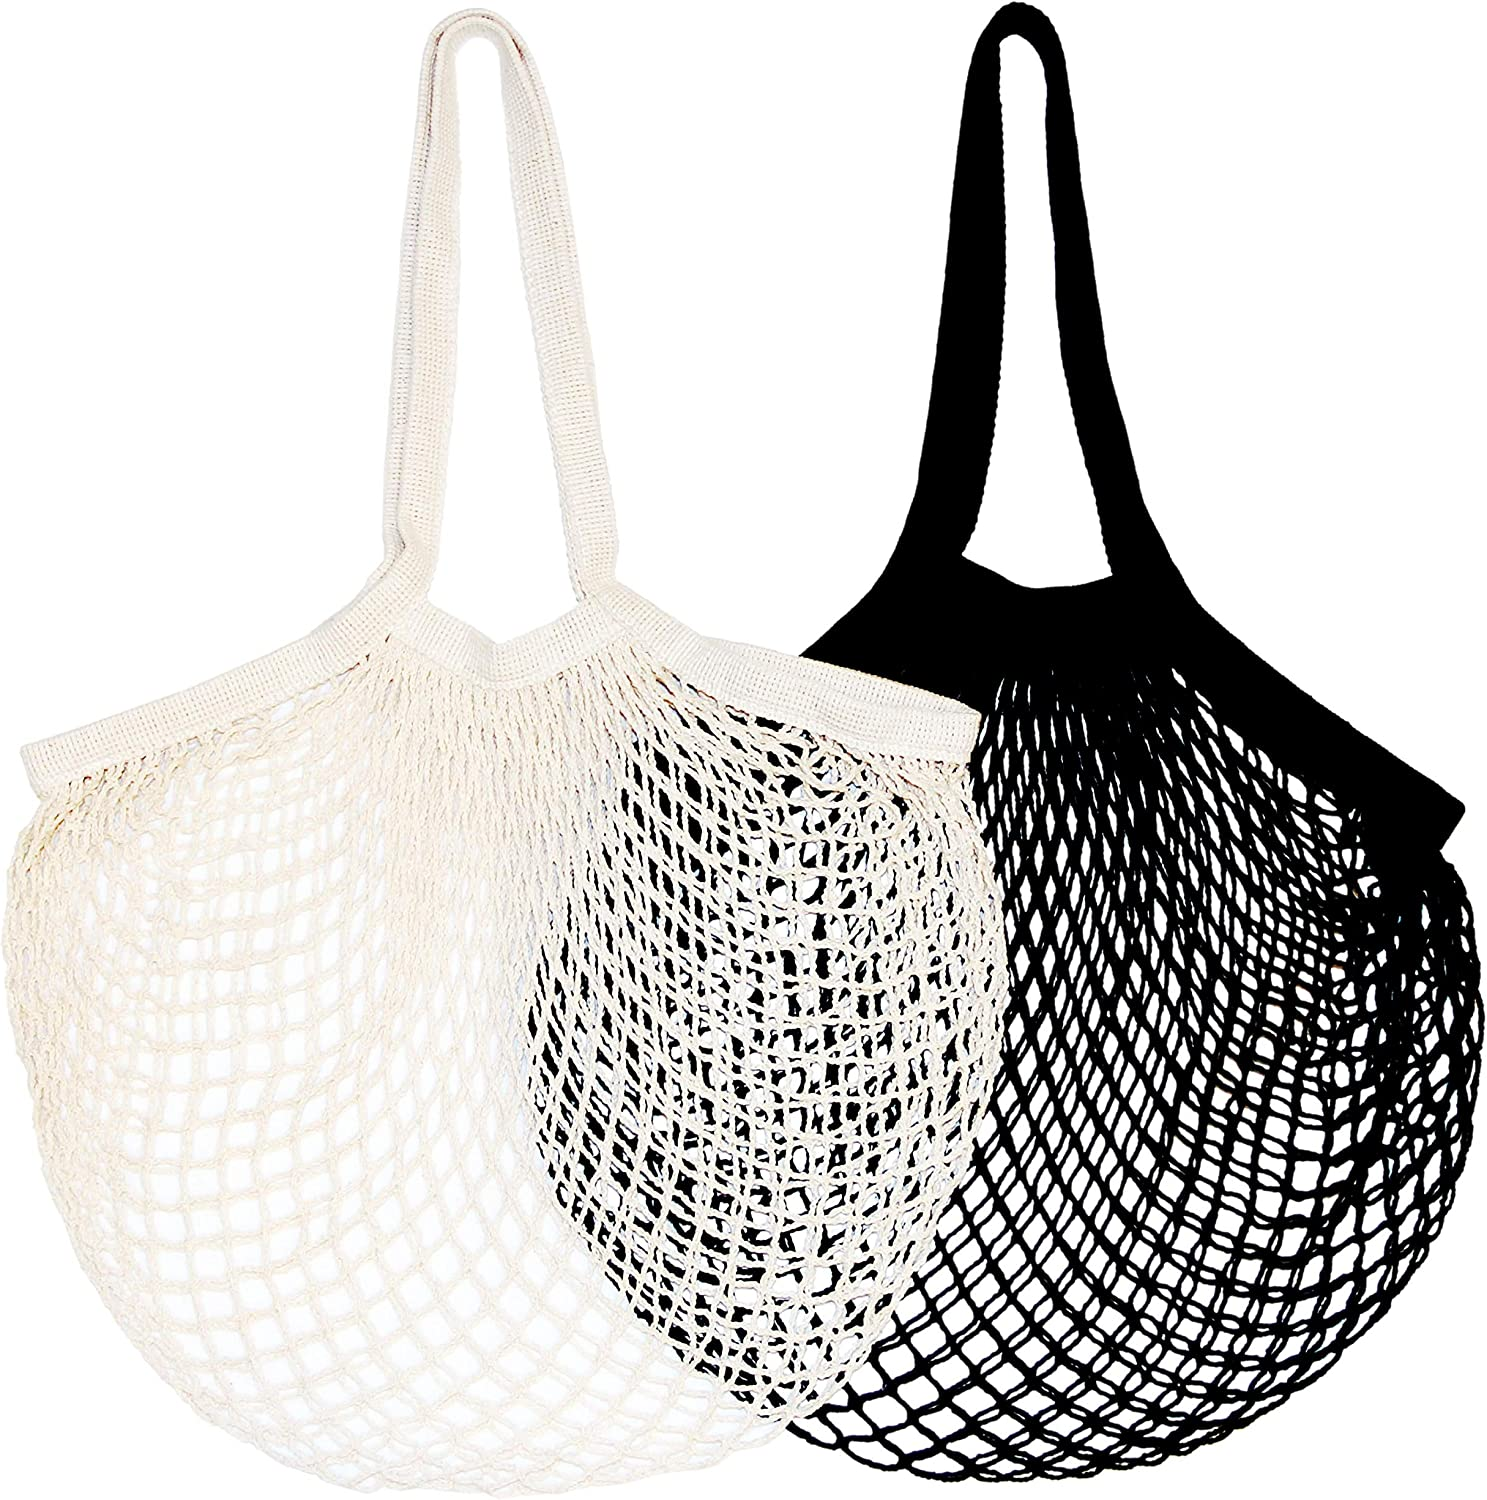 Set of 2 Net Bags / Produce Reusable Grocery Bags - 100% Cotton Net Shopping Tote / Washable French Grocery Bag / Market Bag in Black and Natural Colors / Organic Vegetable Mesh Bag